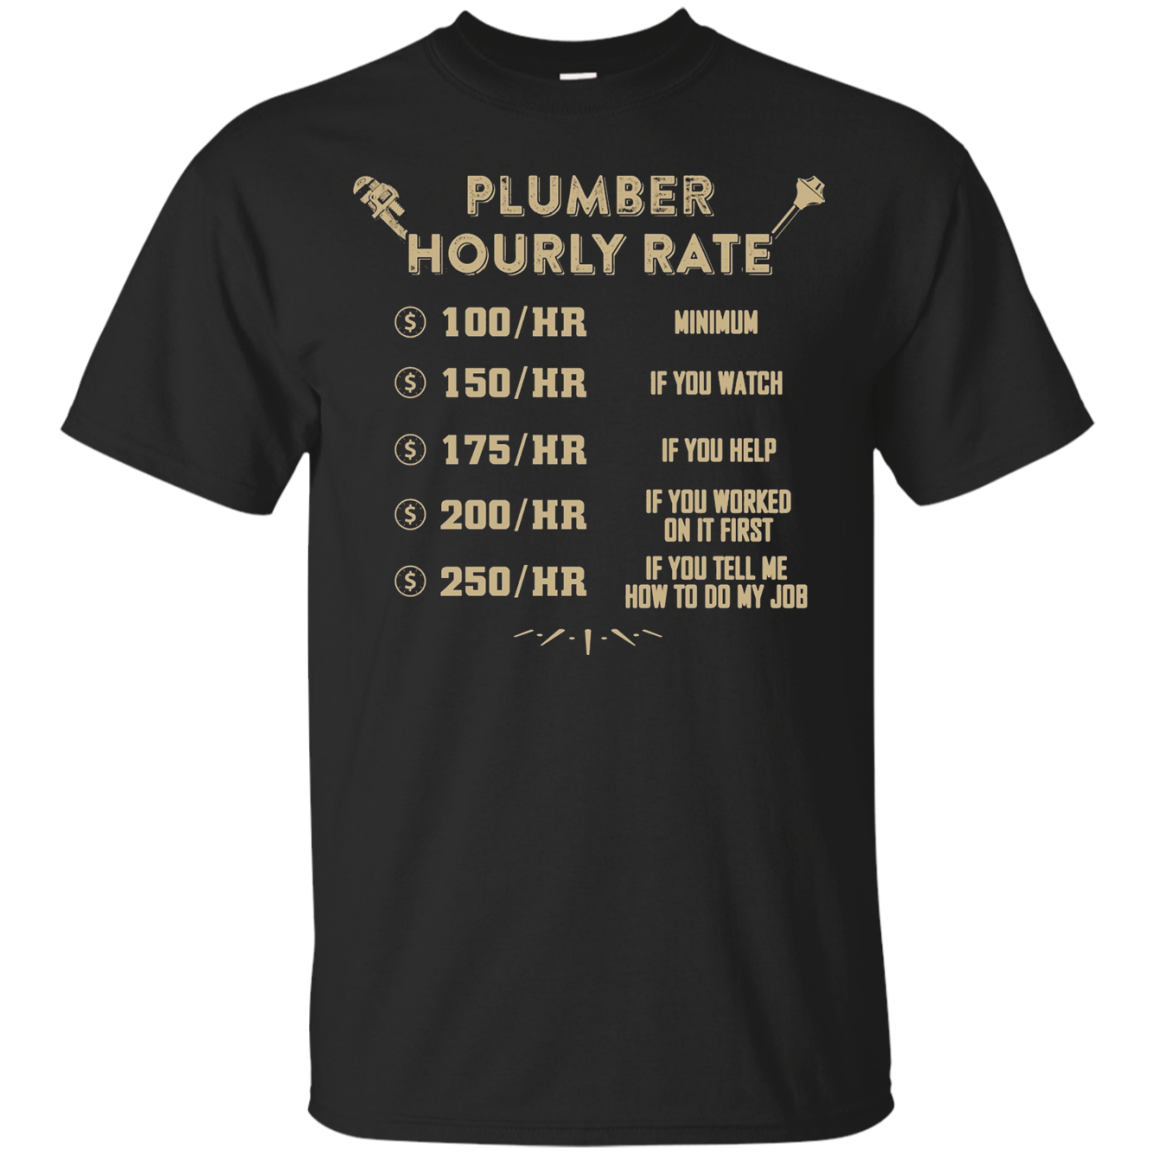 Plumber T-shirt , Plumber Hourly Rate